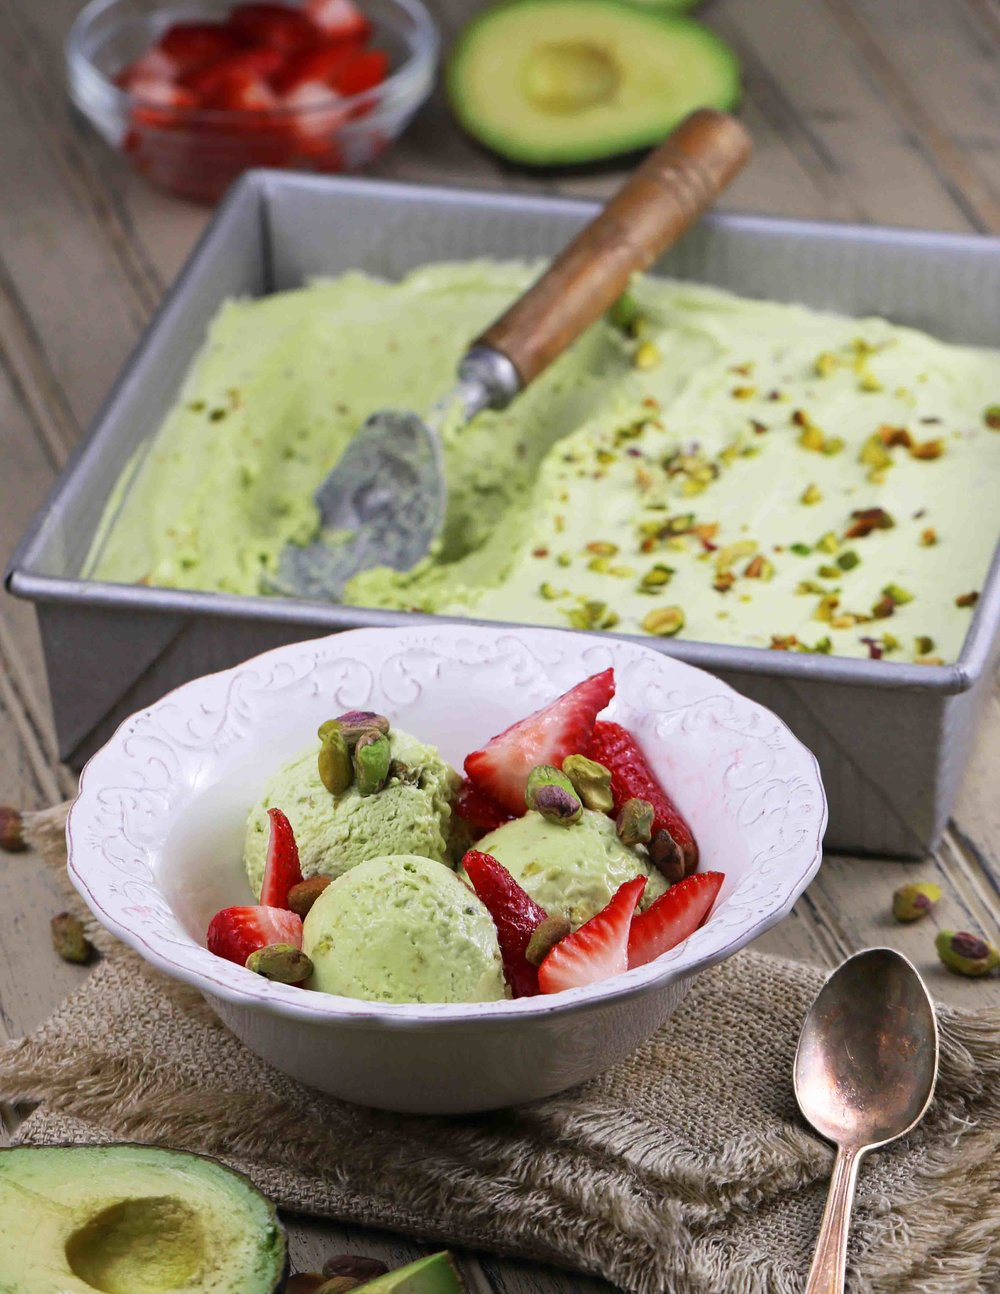 AVOCADO & PISTACHIO ICE CREAM